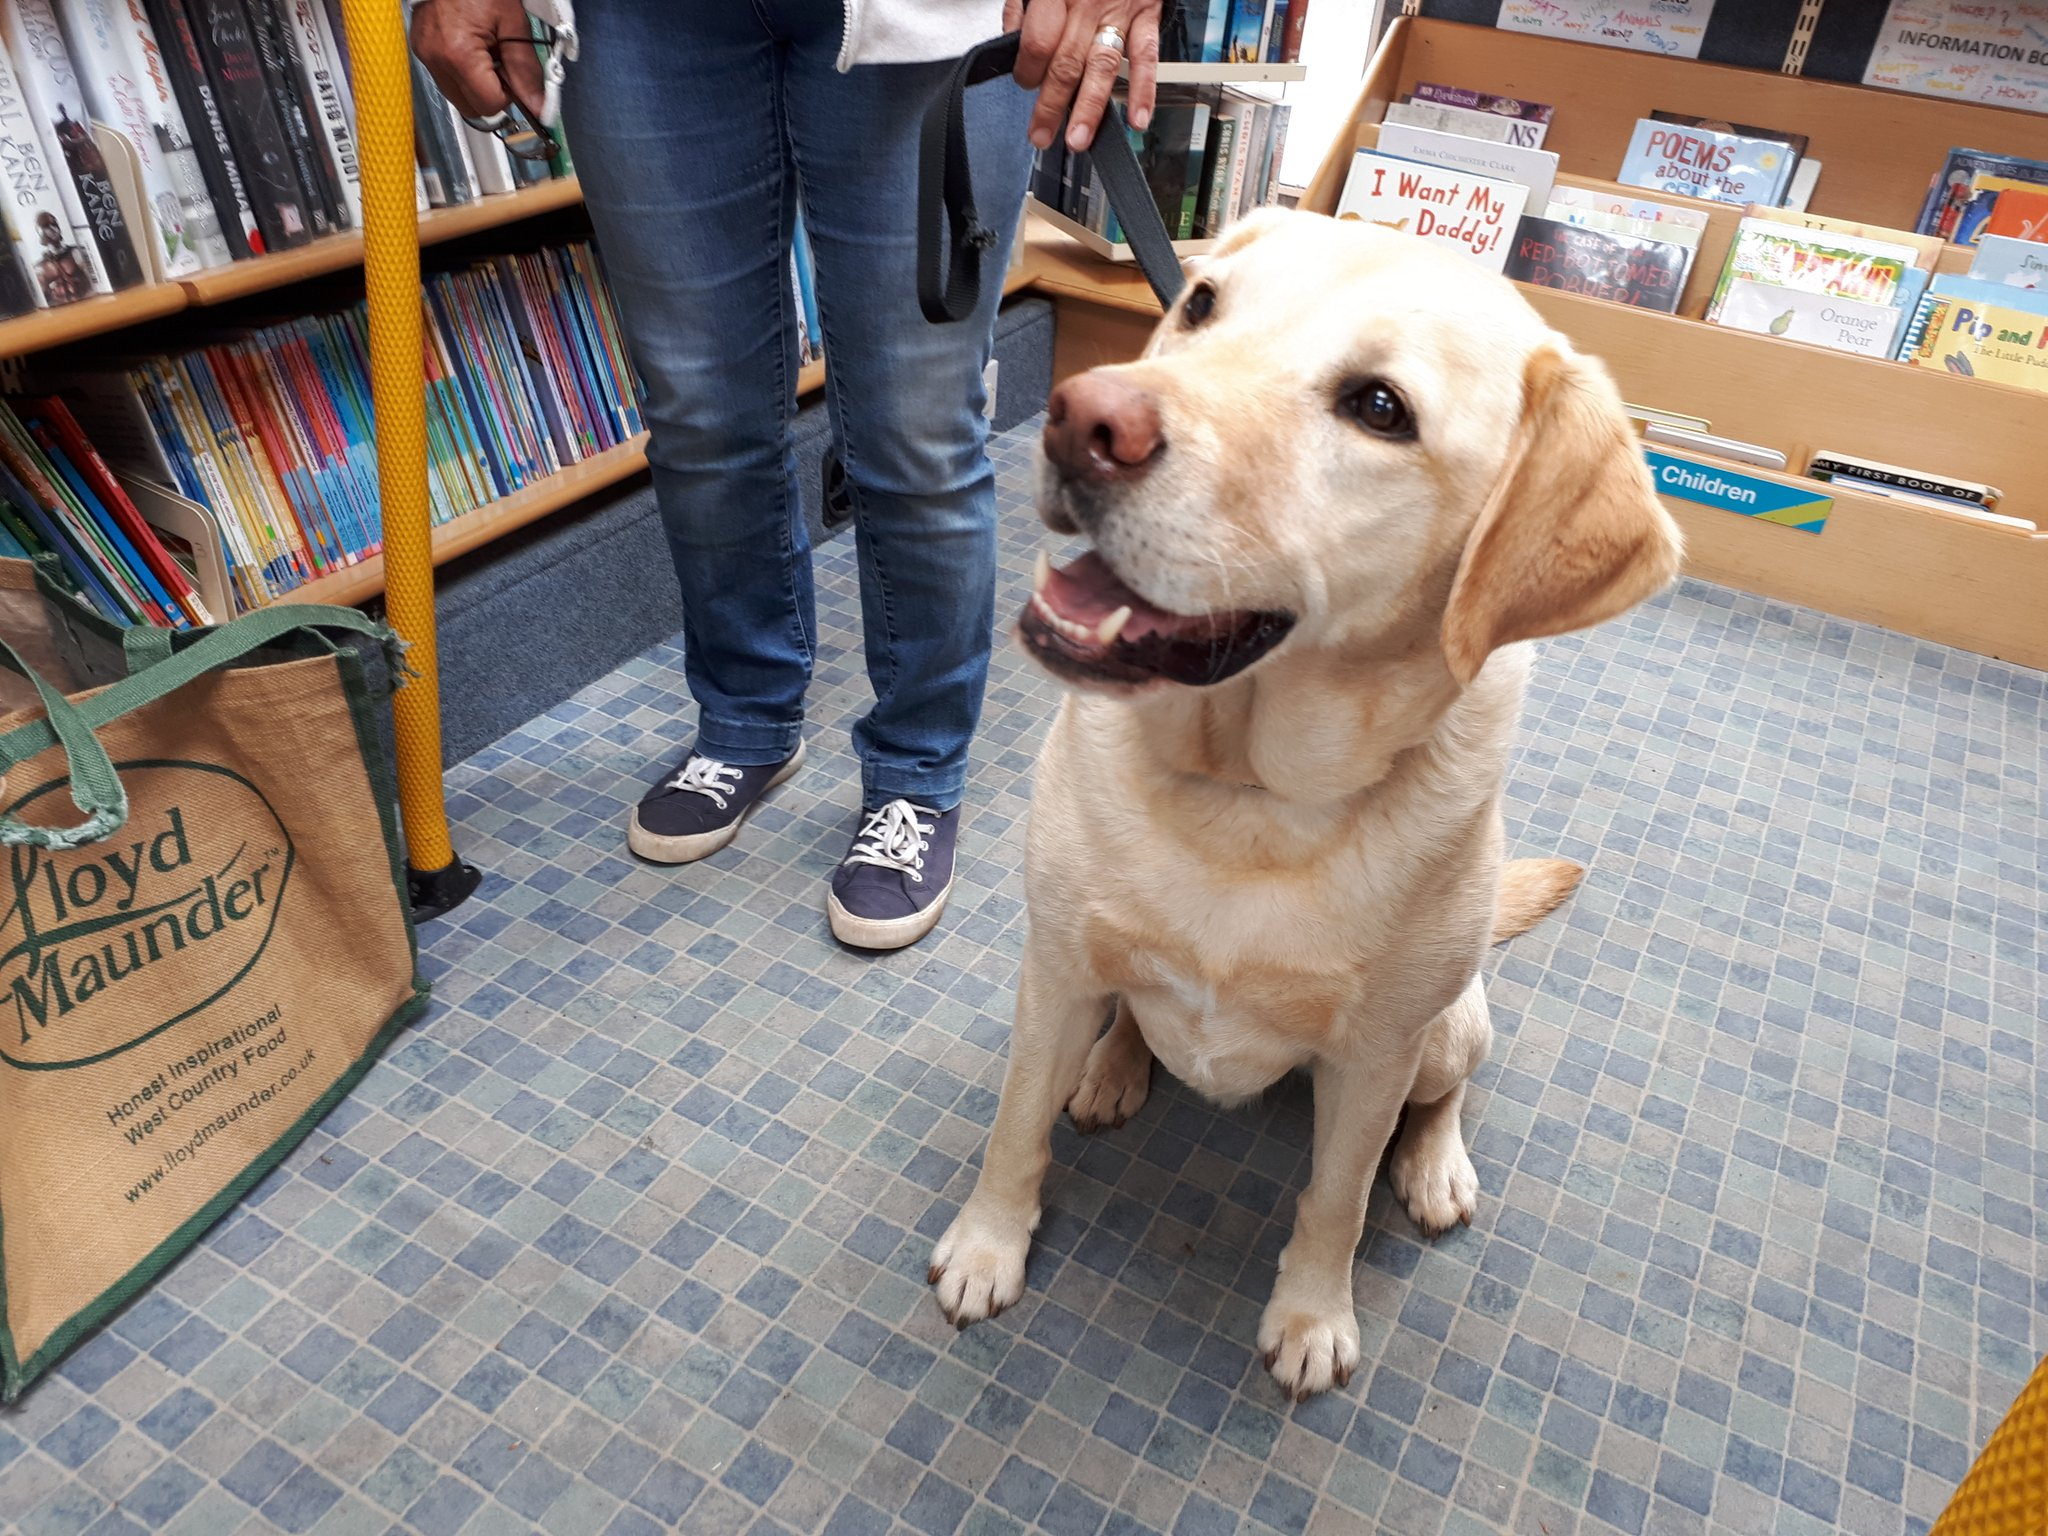 A labrador sittng nicely in a mobile library